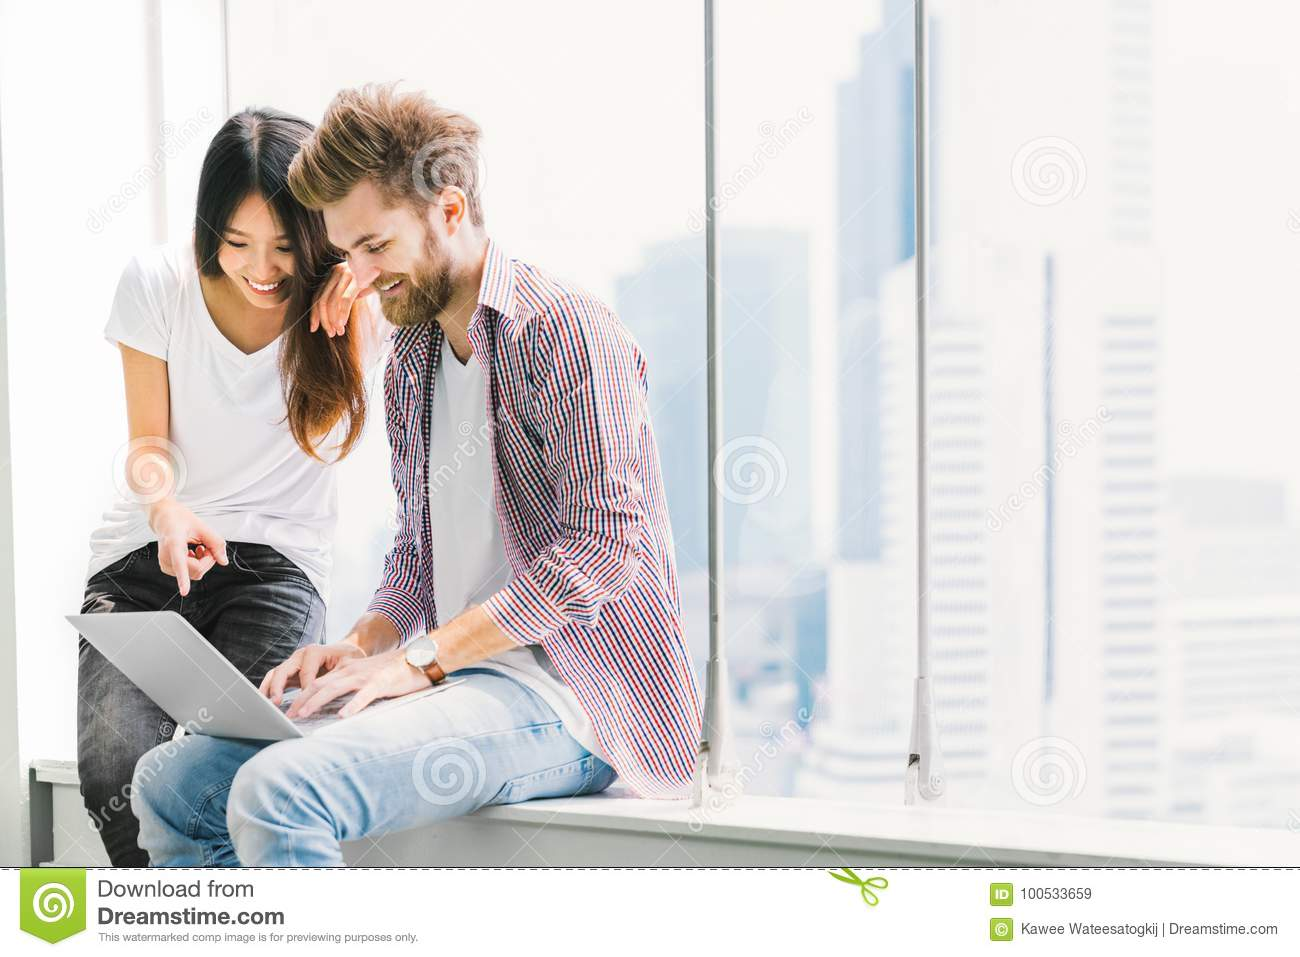 Multi-ethnic young couple or college student using notebook laptop together in campus or office. Information technology concept